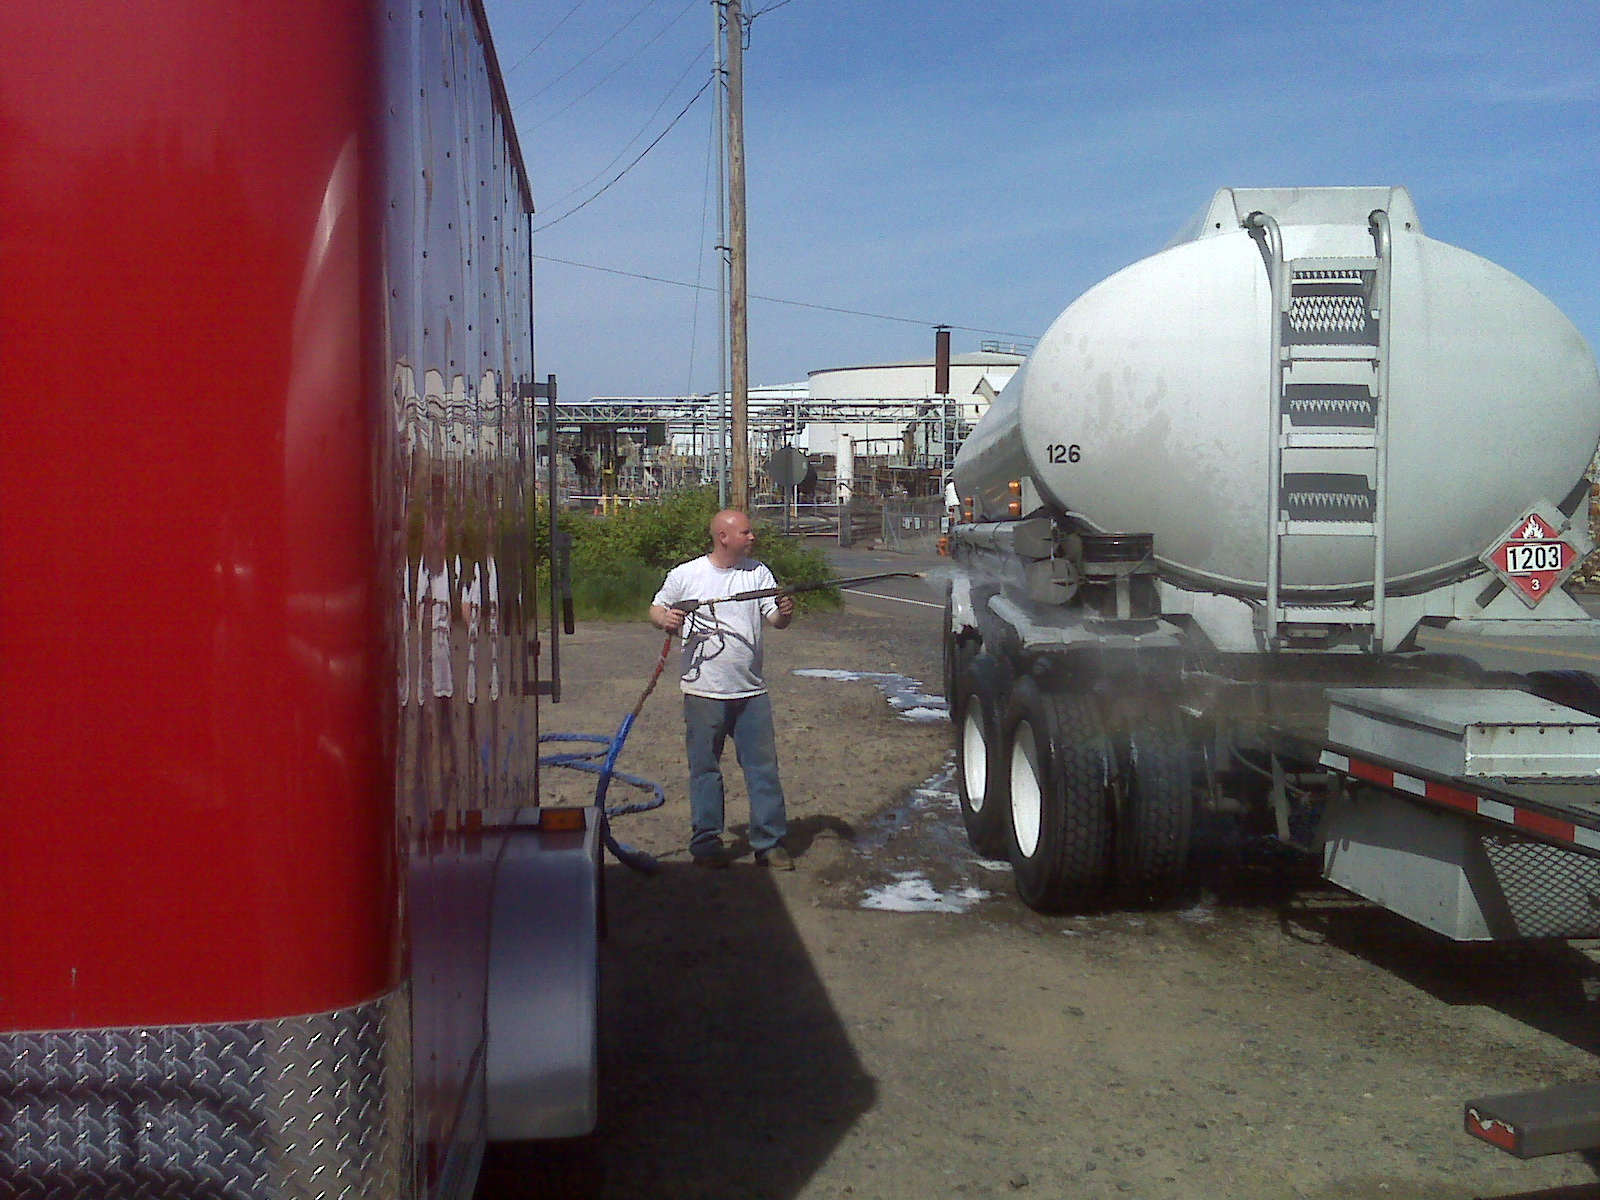 Here I am, as an Owner, Power Wash - Washing A Truck. I do a lot of these things myself to make sure I stay in shape to give you the very best service attainable in our industry. I am a real hands on Owner of this business.